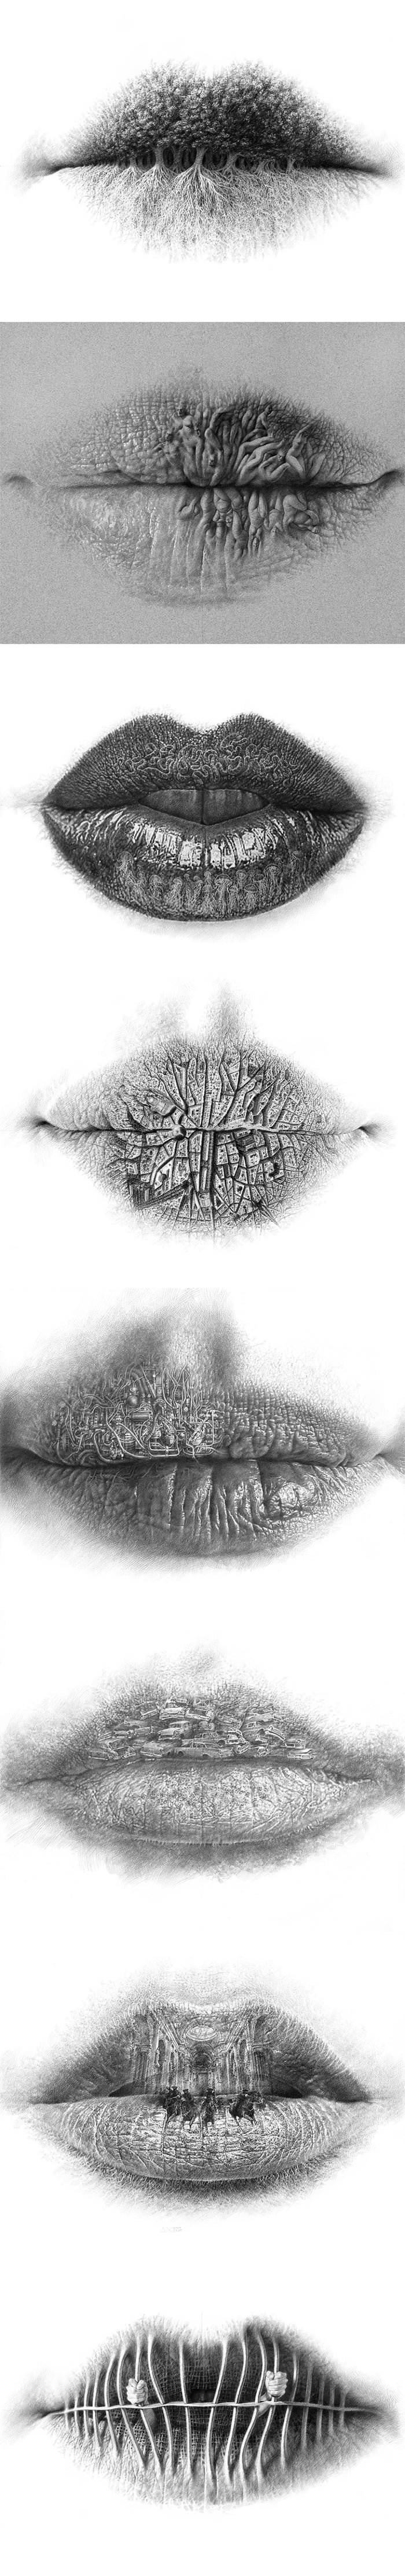 Finding life on her lips... Drawings by Christo Dagorov - 9GAG 11ad688da3